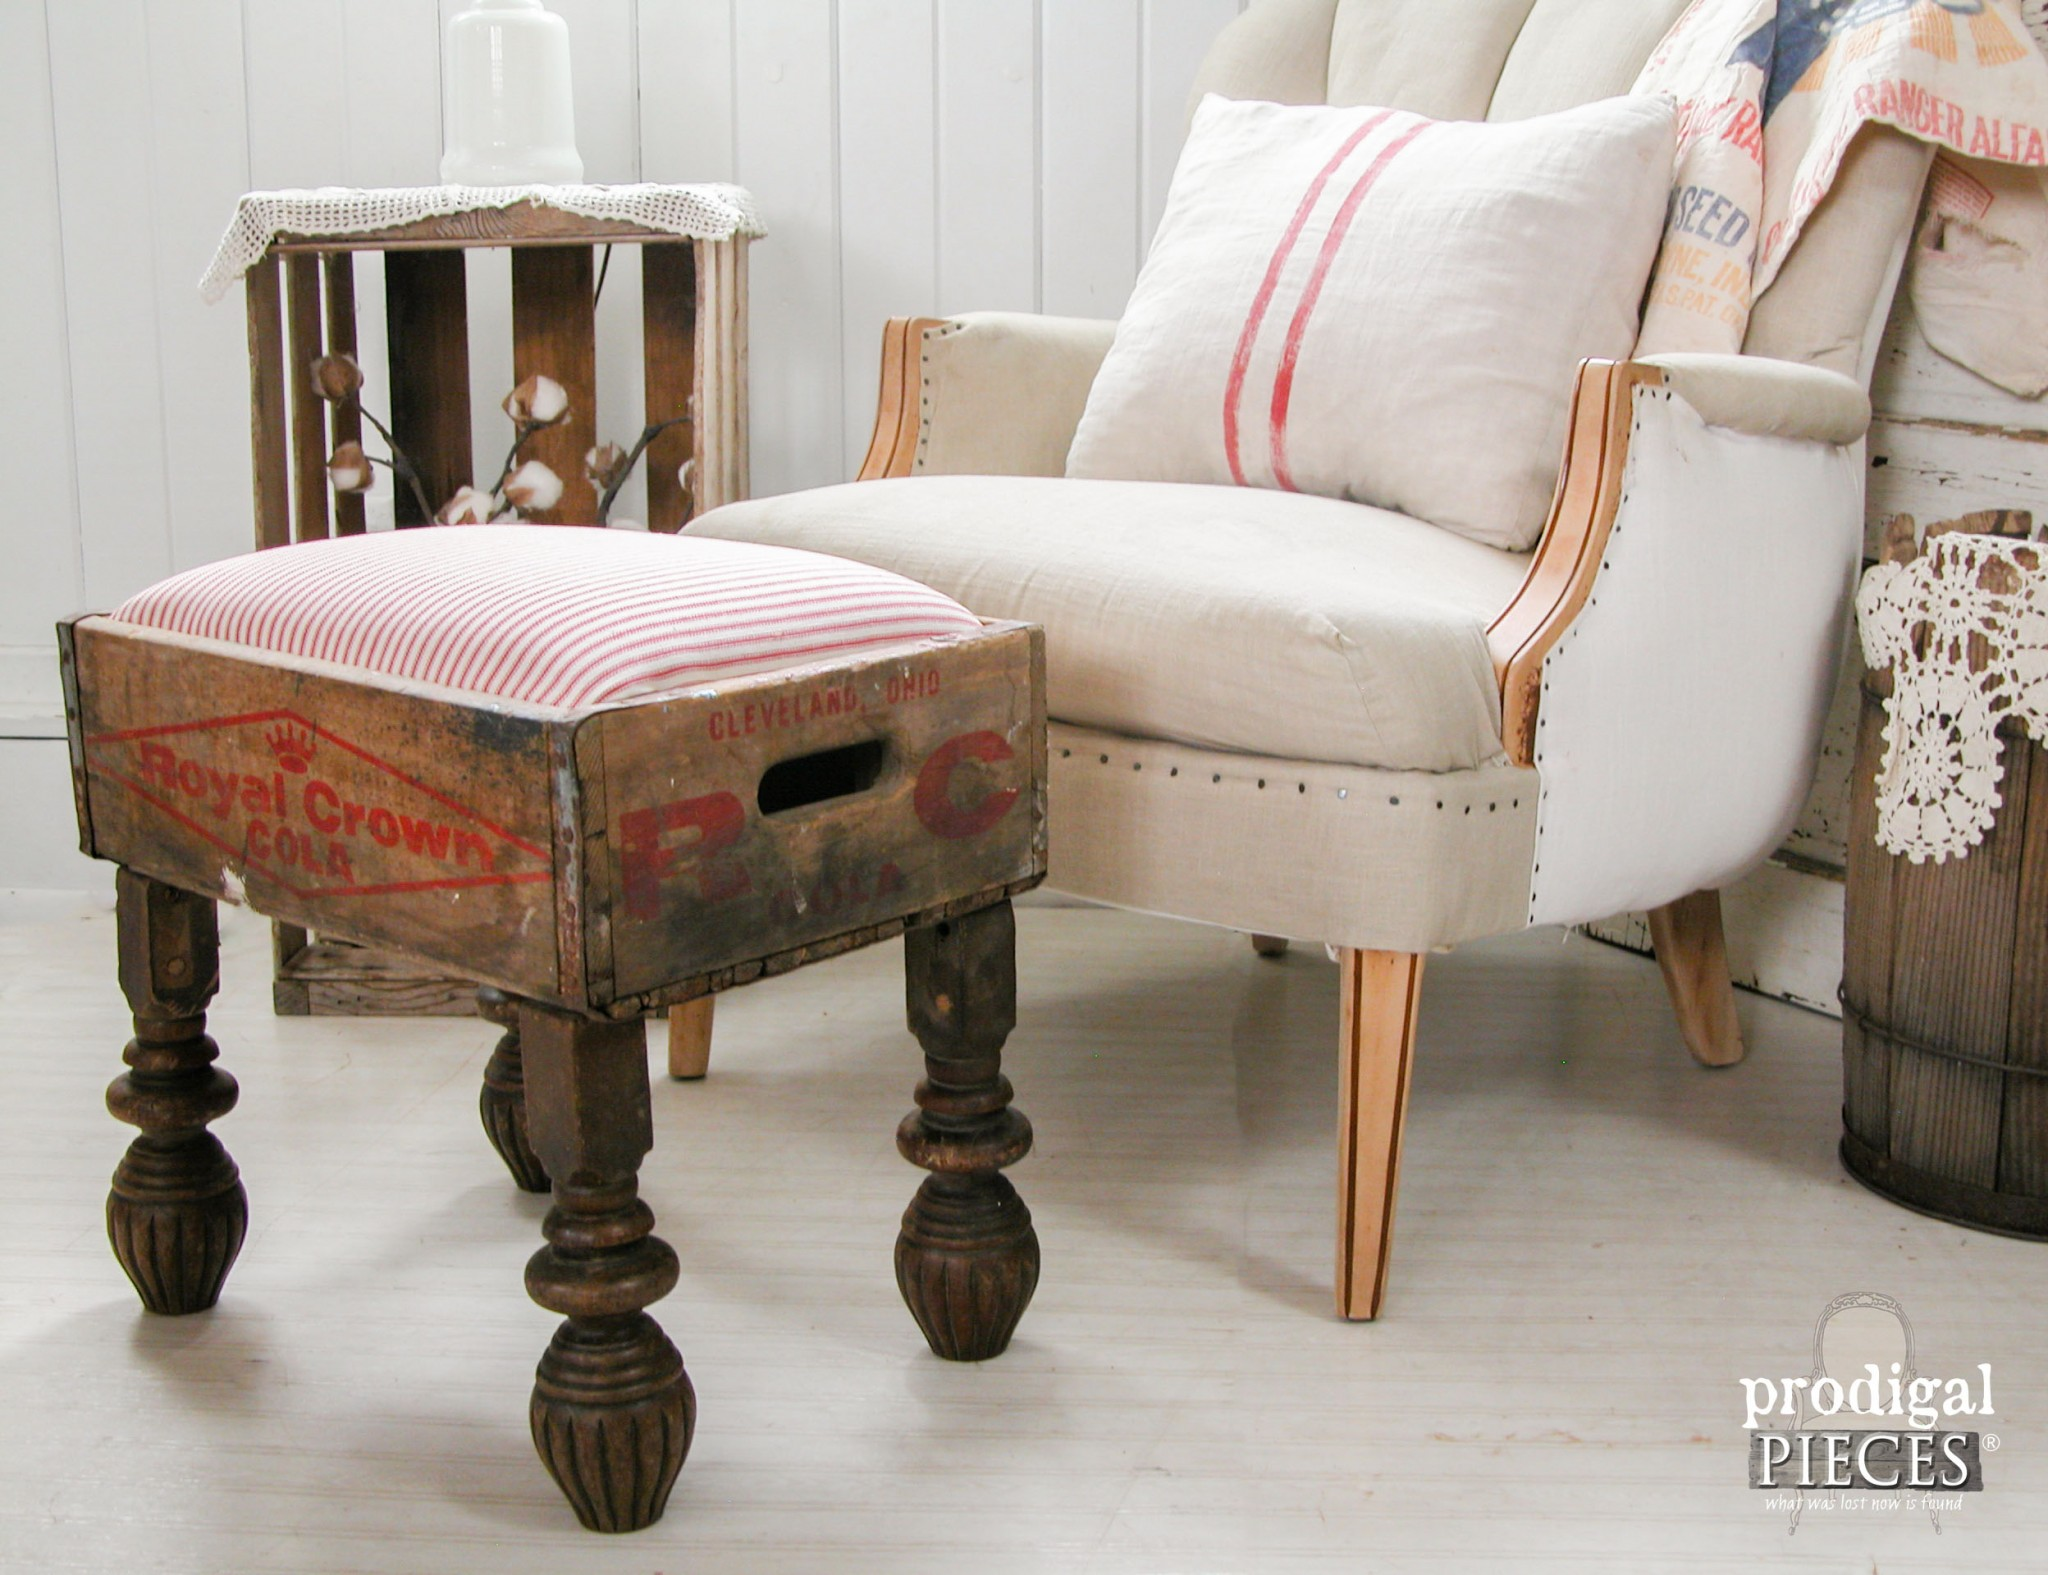 Repurposed Royal Crown Cola Crate Foot Stool by Prodigal Pieces | www.prodigalpieces.com